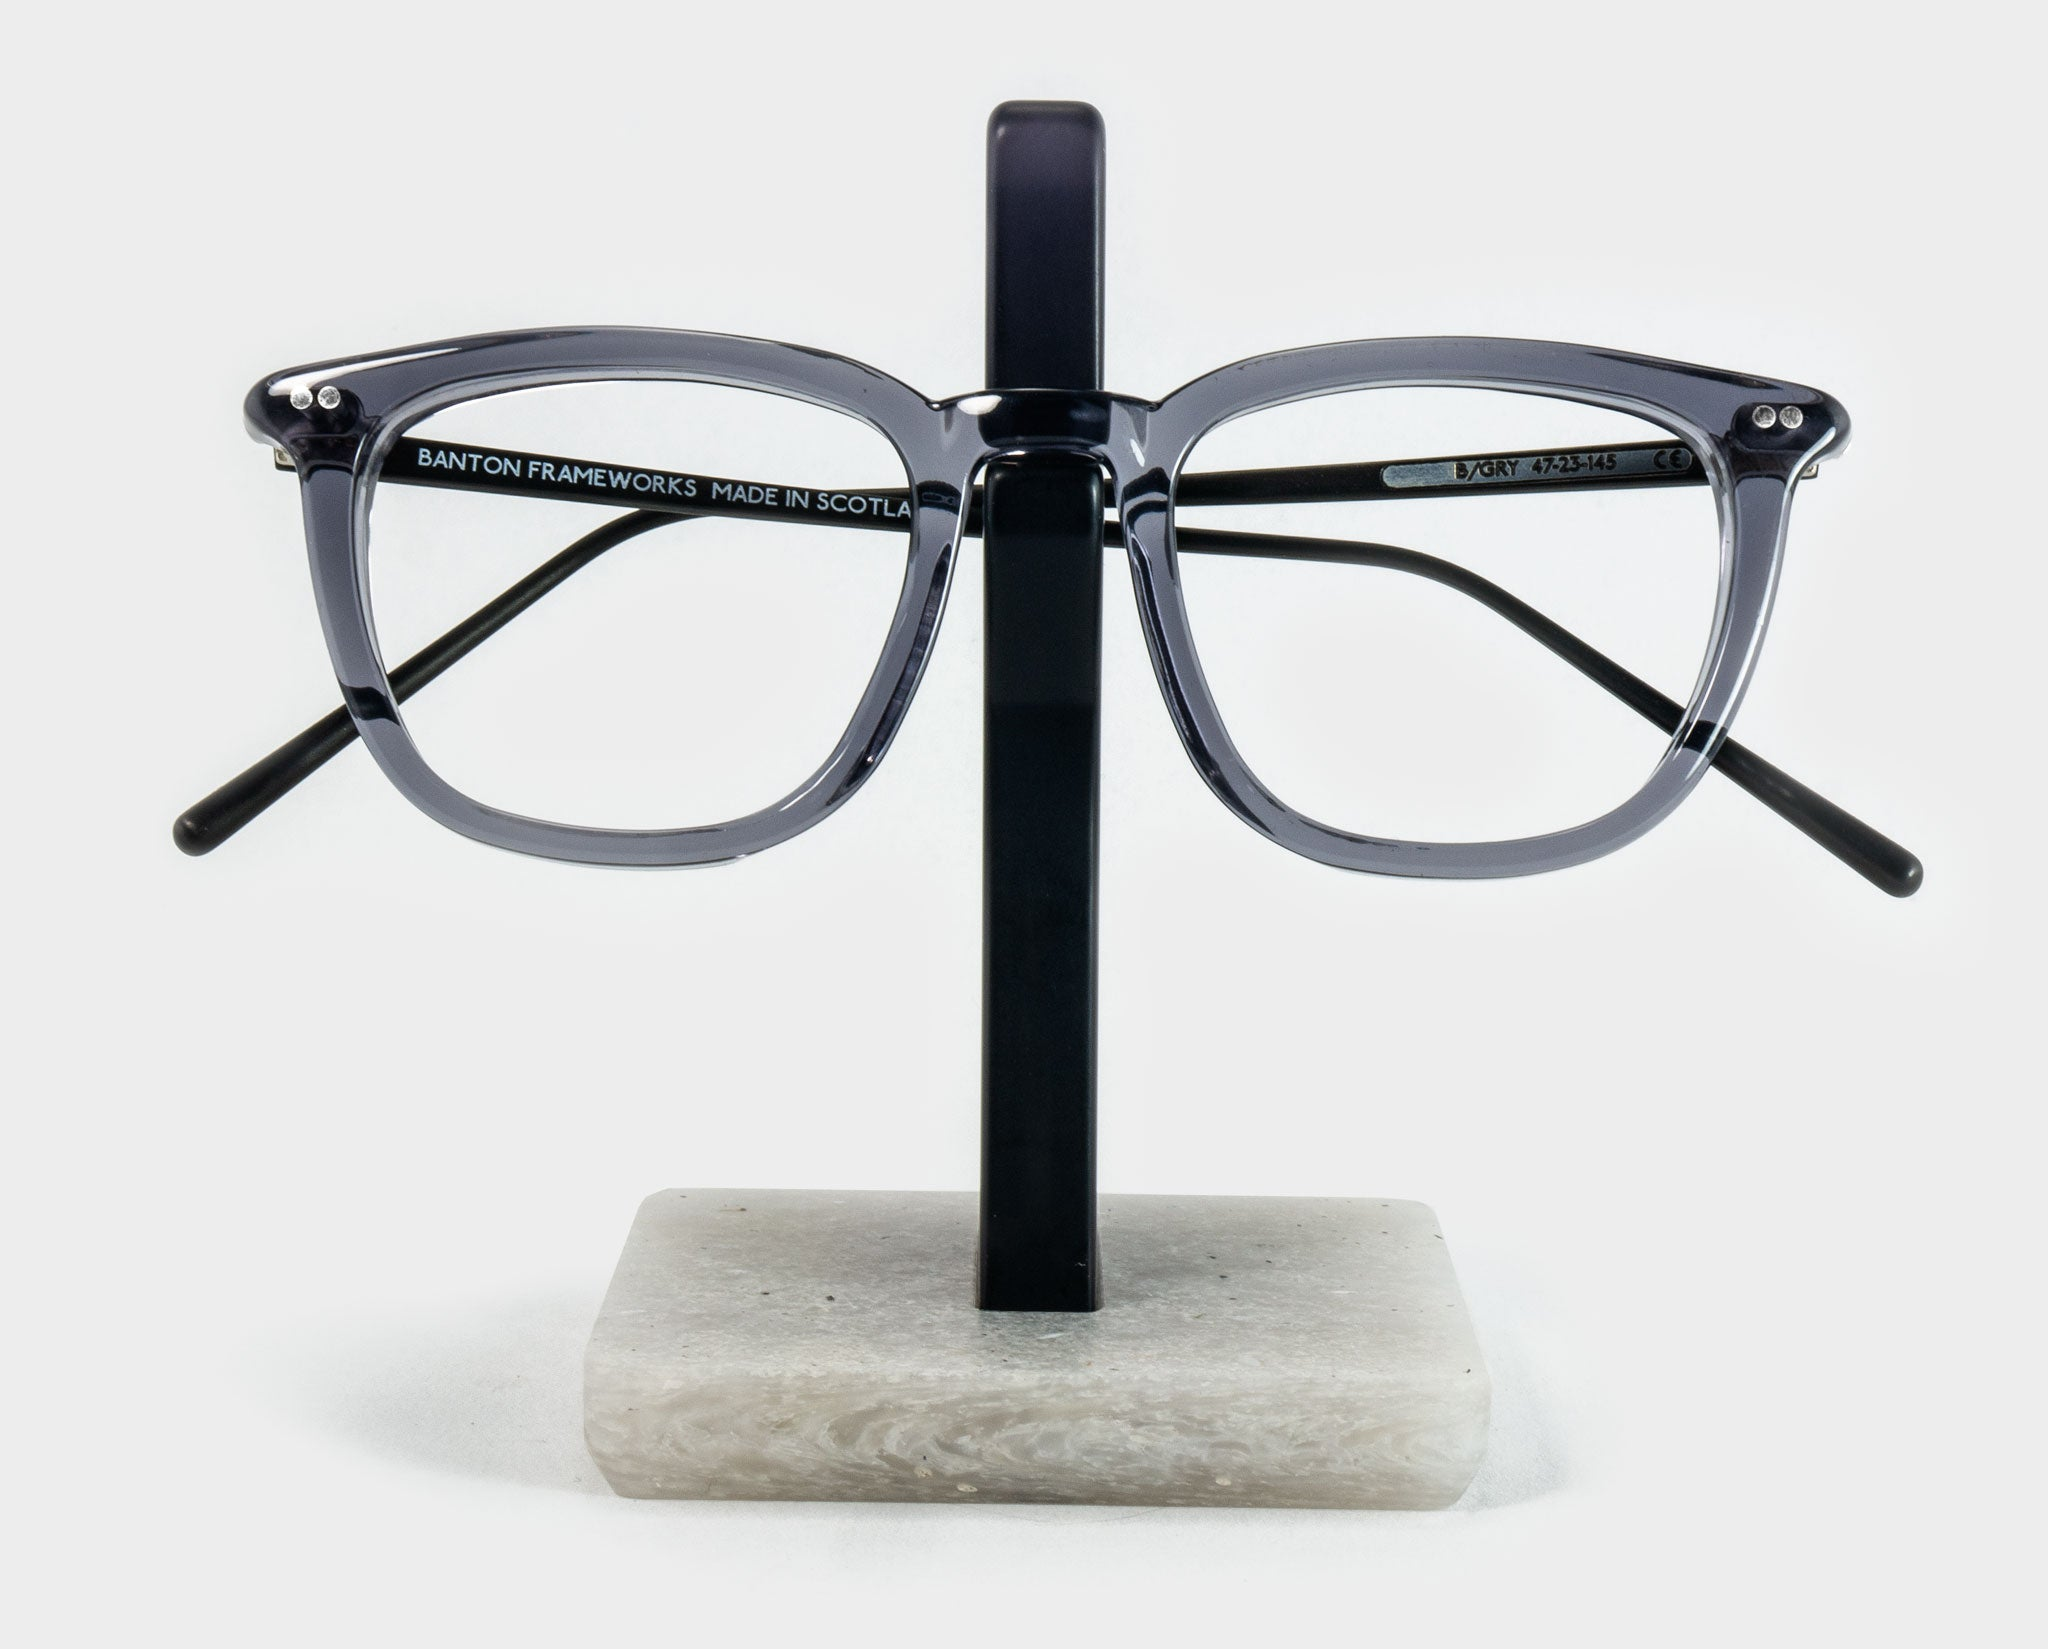 Grey Spectacle Holder with glasses front view